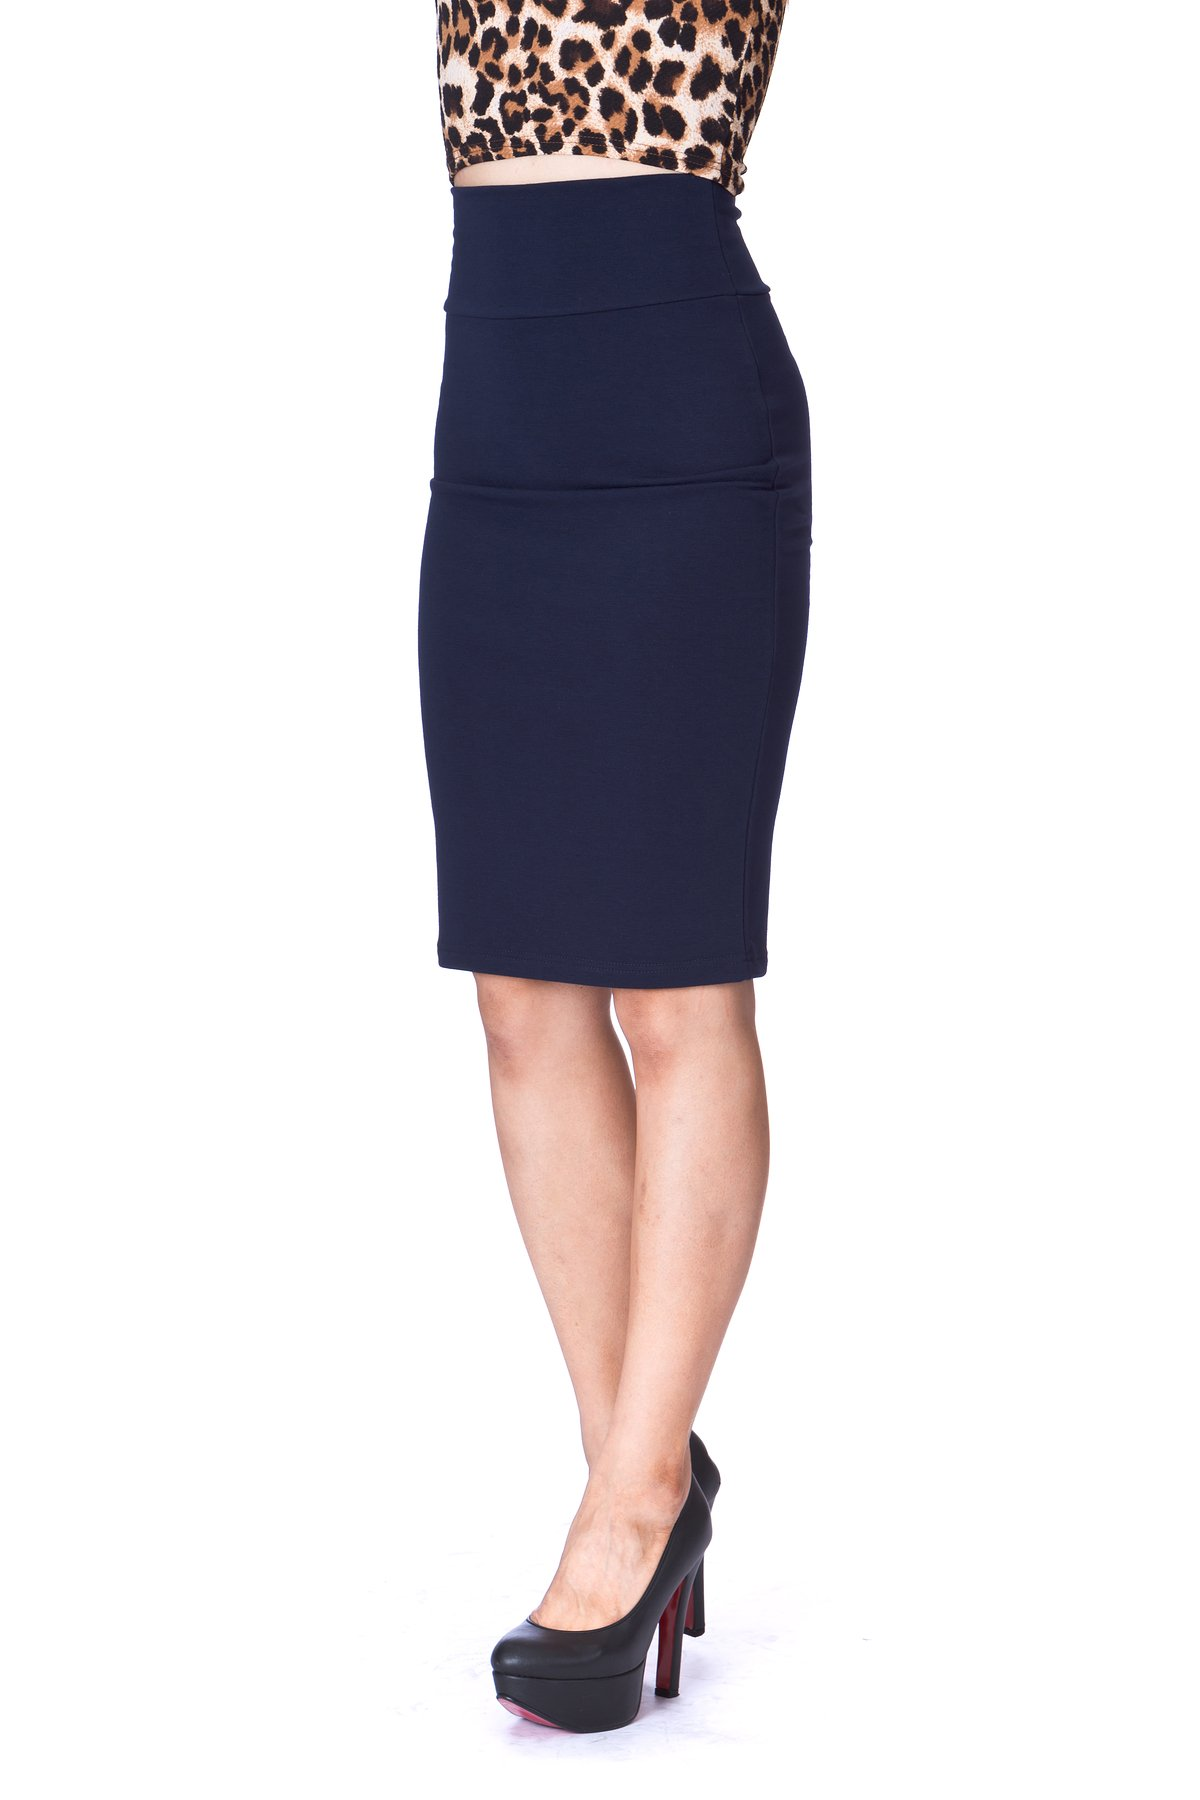 Every Occasion Stretch Pull on Wide High Waist Bodycon Pencil Knee Length Midi Skirt Navy 4